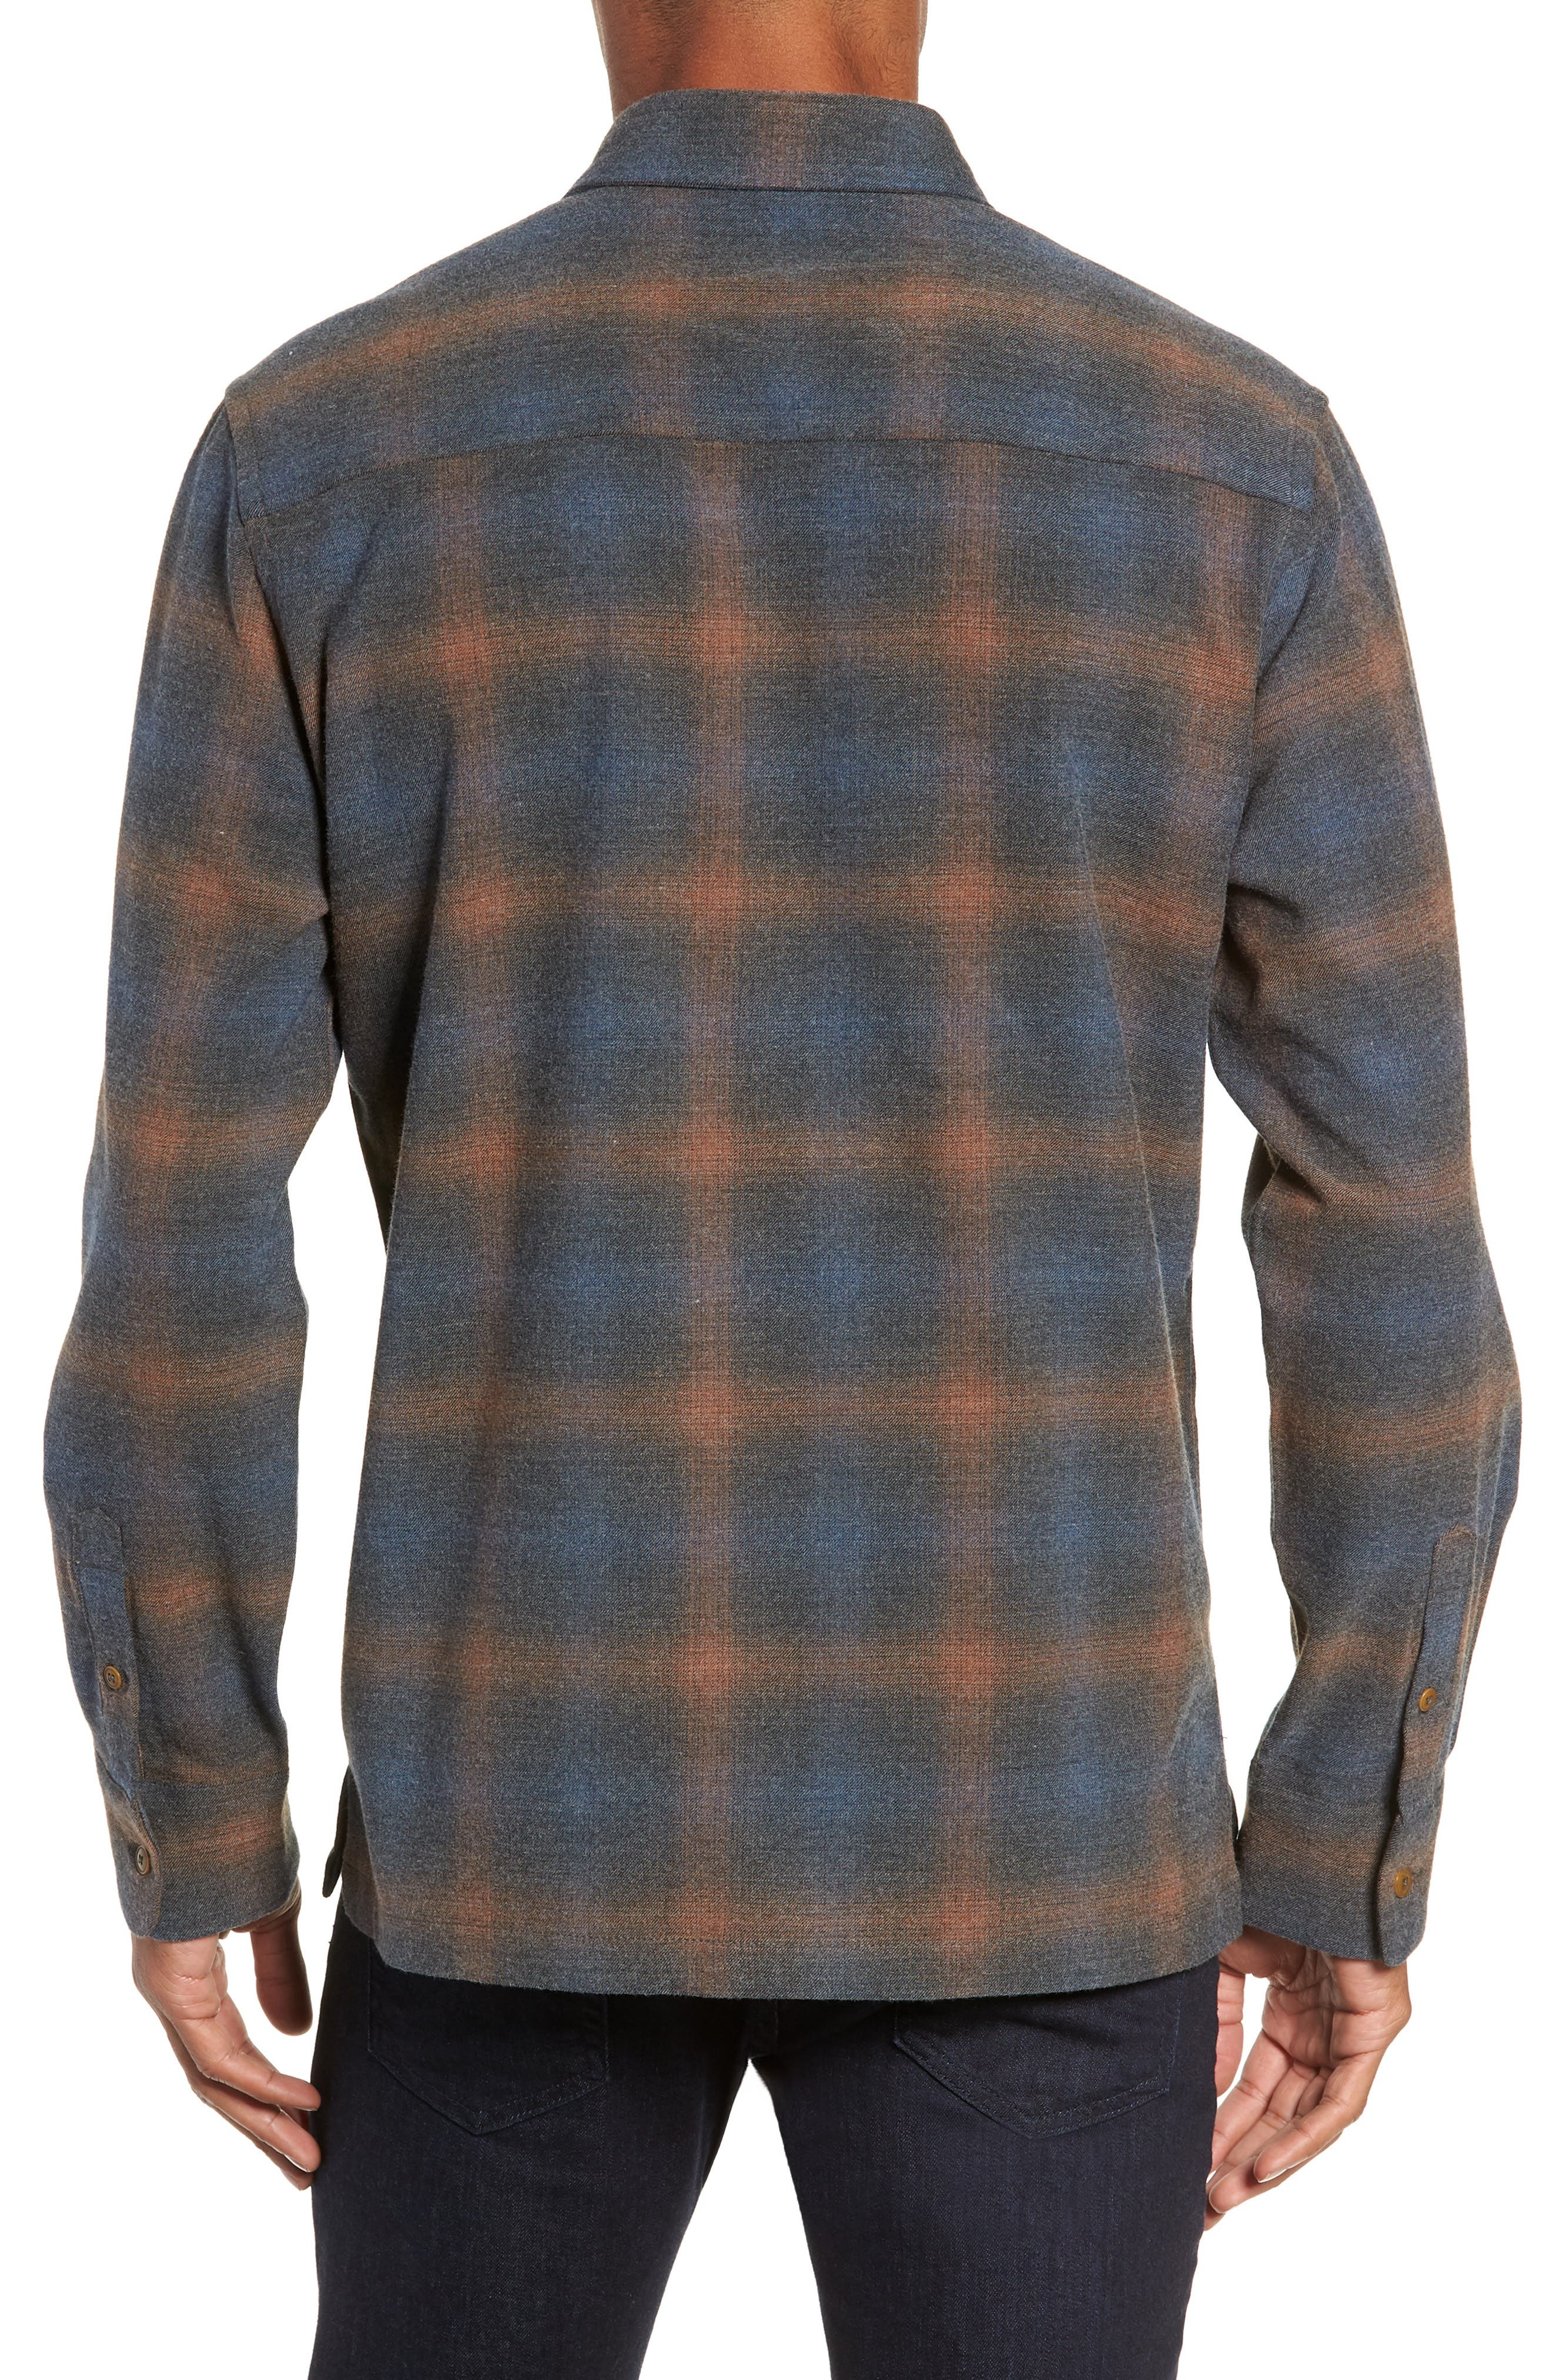 Washburn Regular Fit Plaid Stretch Brushed Flannel Shirt,                             Alternate thumbnail 3, color,                             BLUE WING TEAL HEATHER